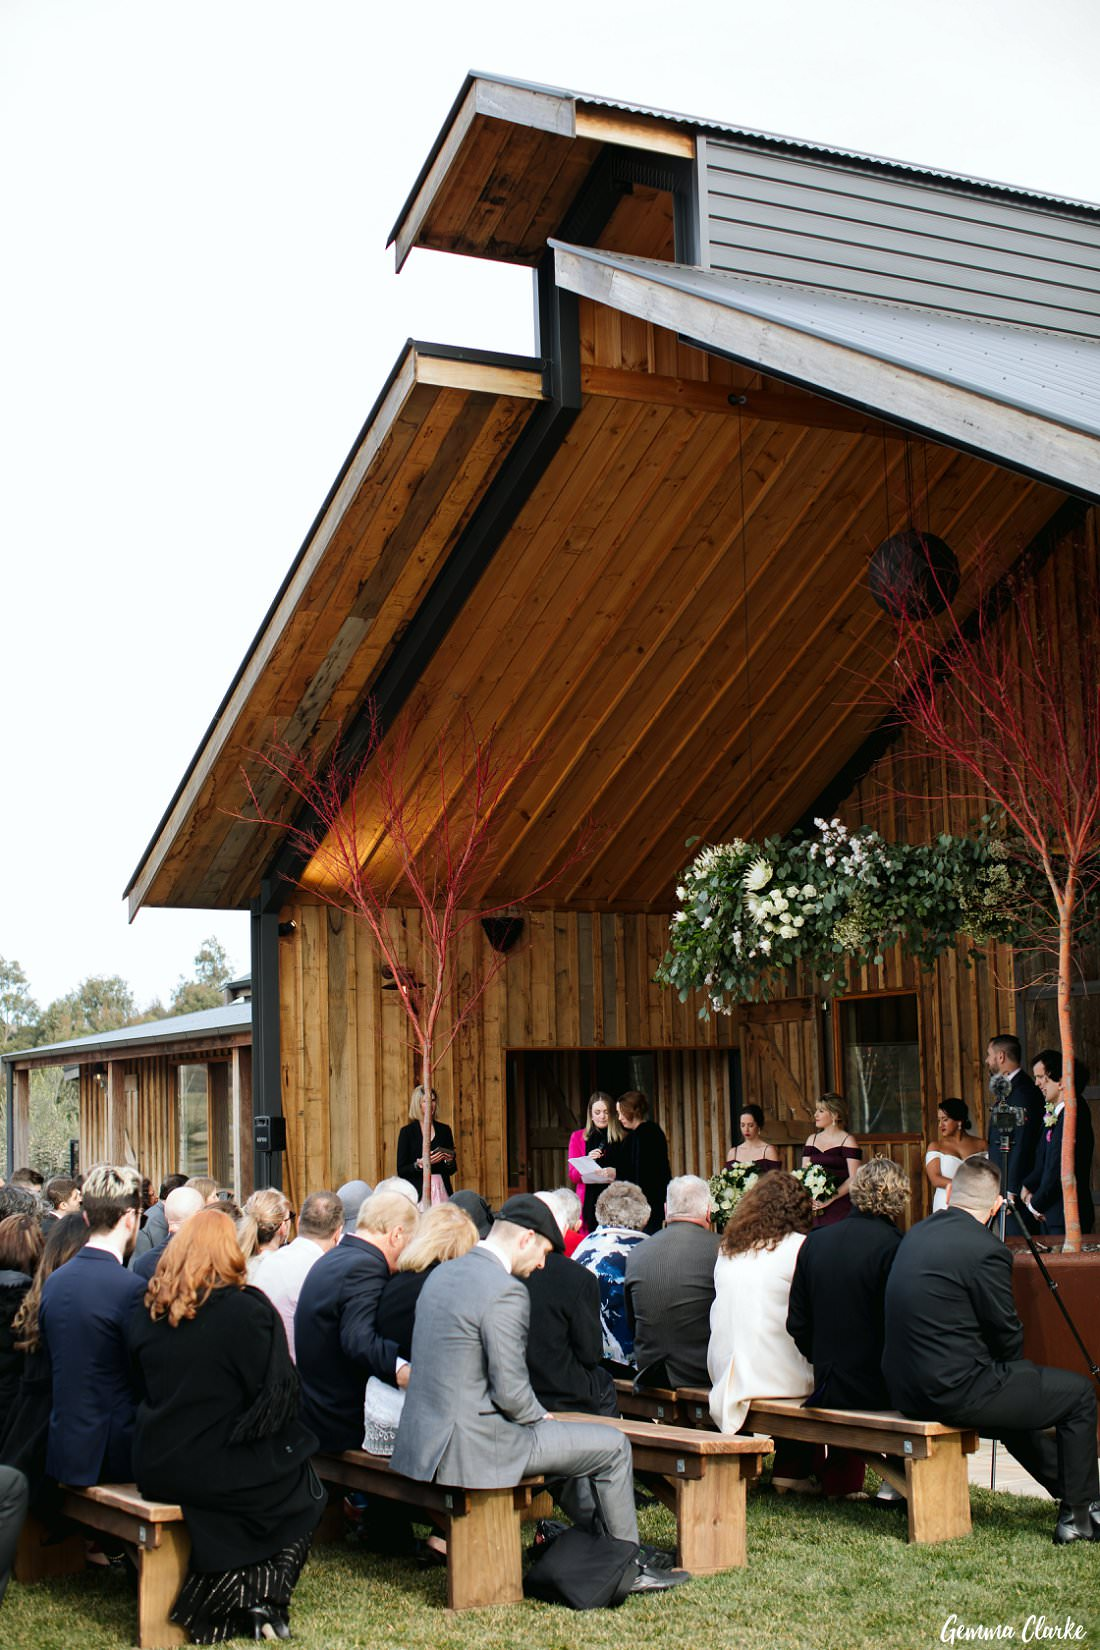 The ceremony during the readings at The Stables Wedding